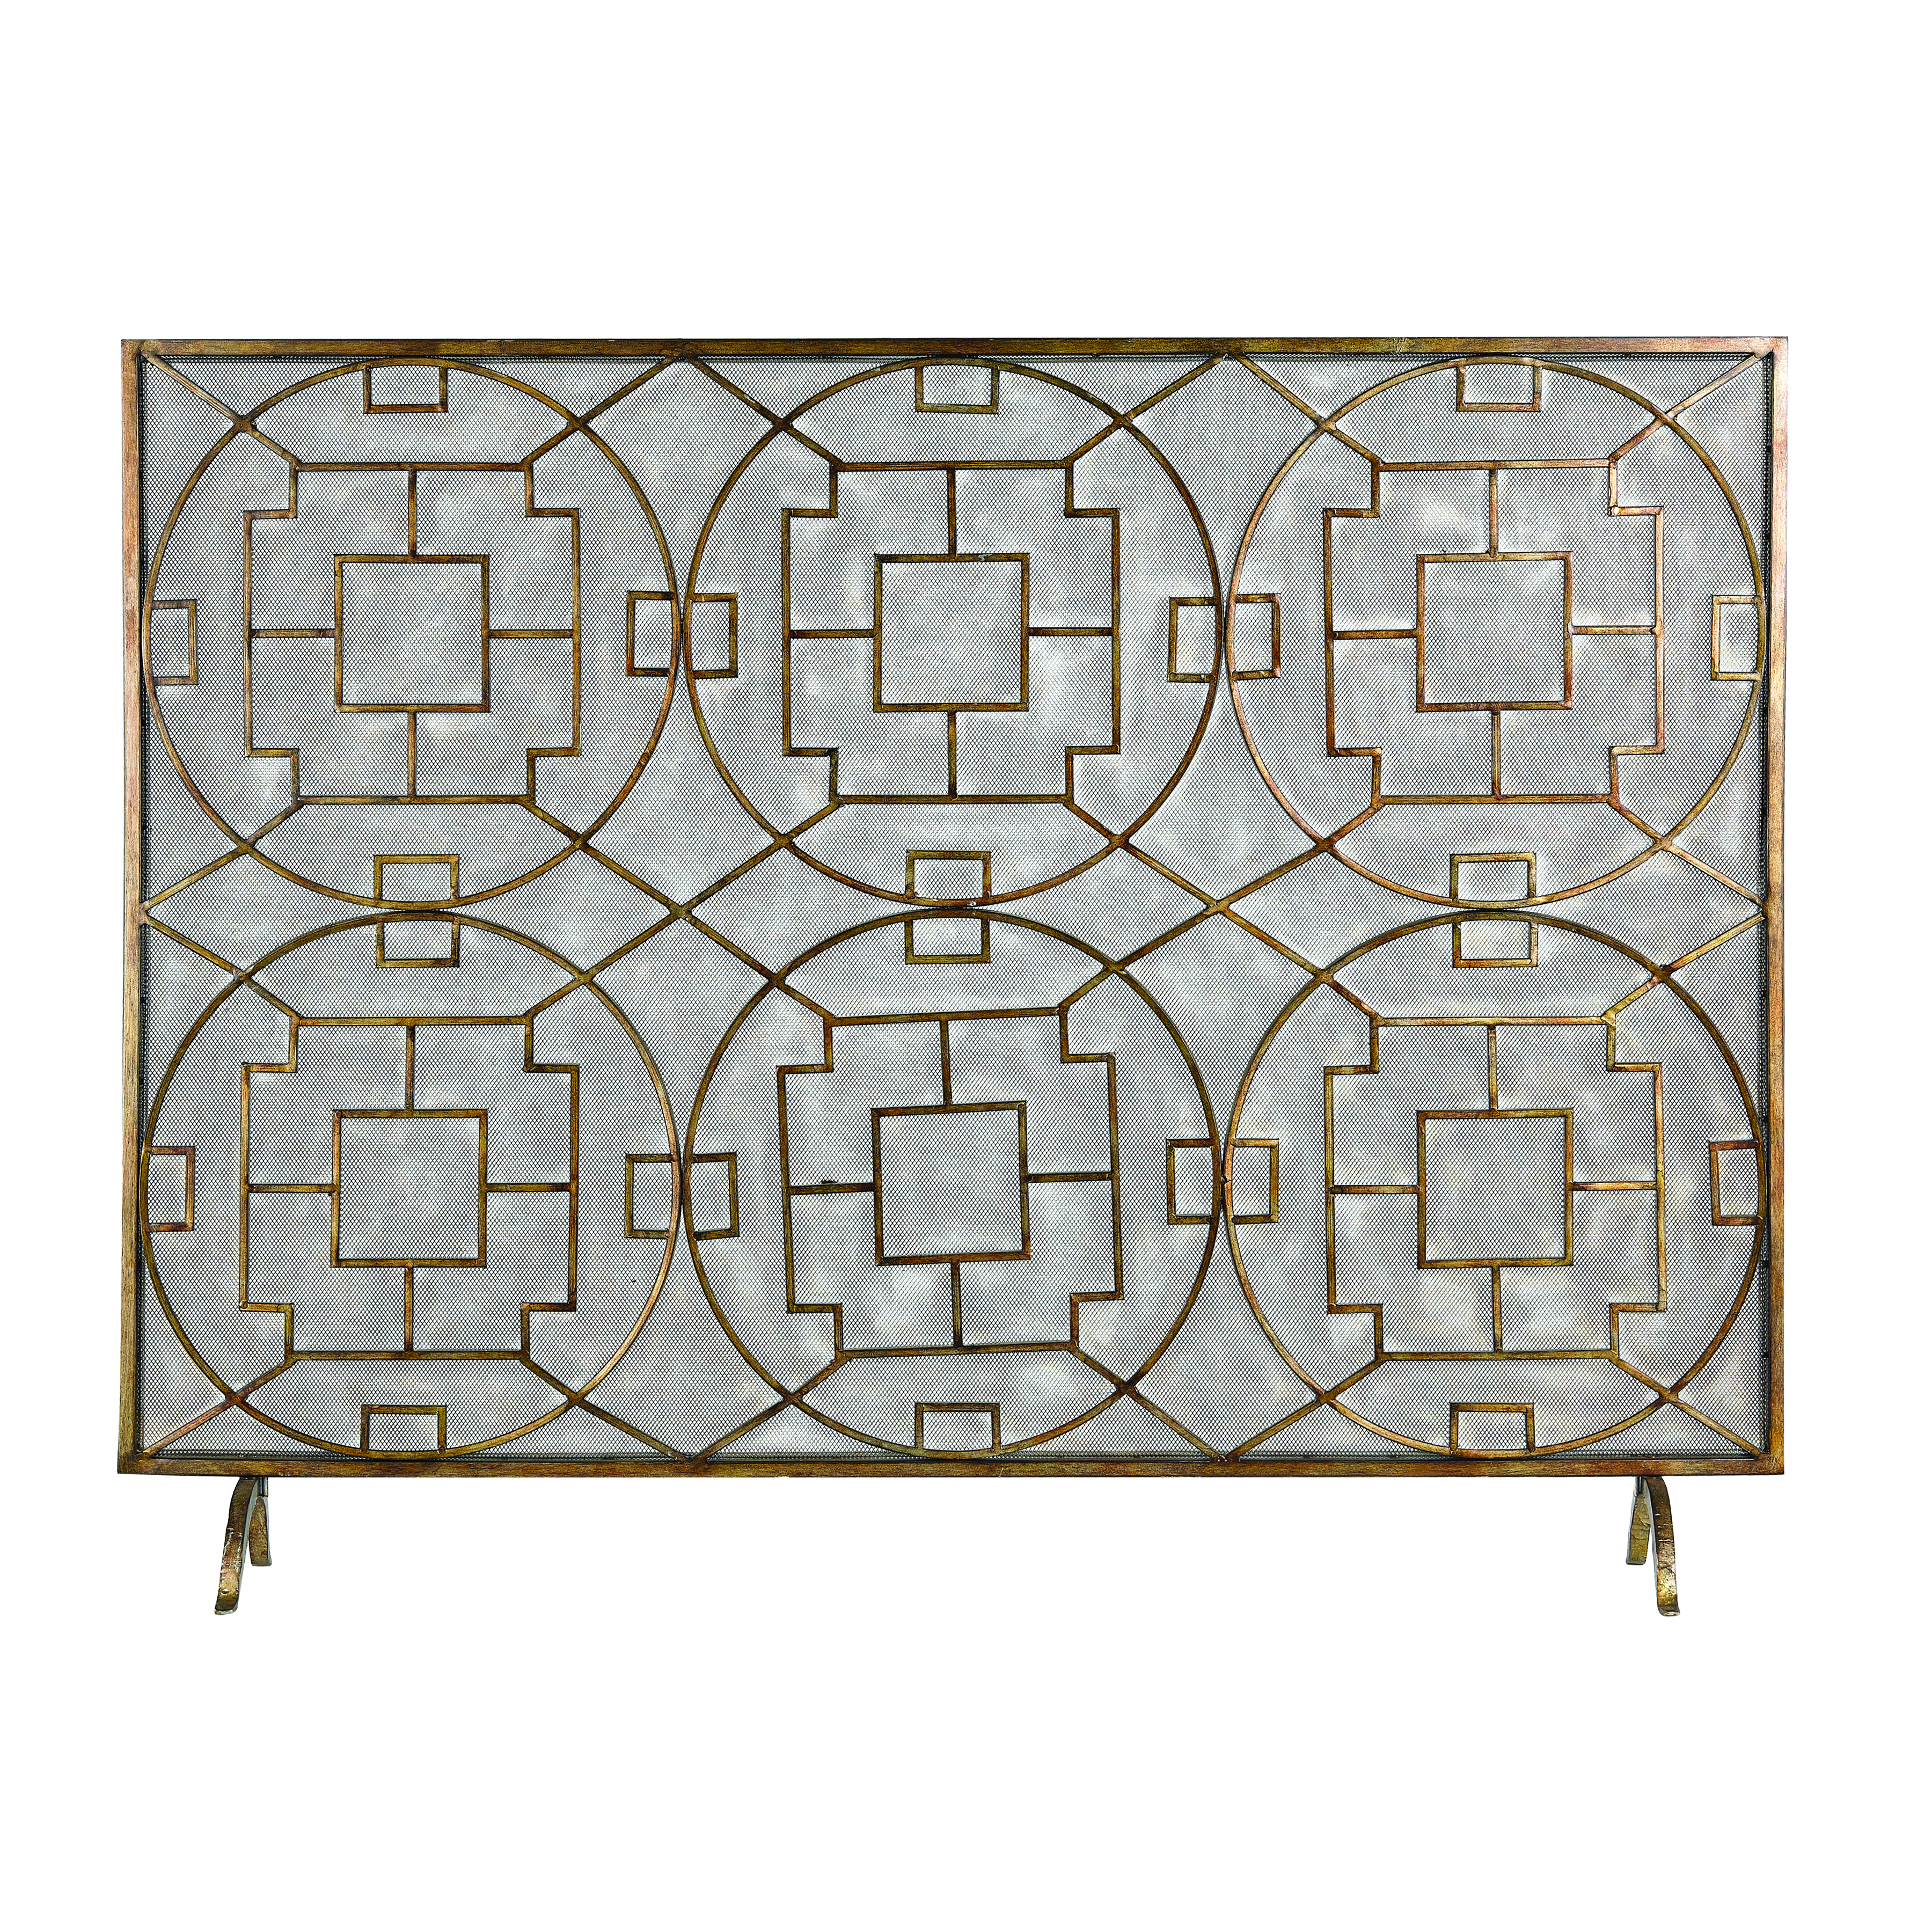 Geometric Firescreen 51-10160 | ELK Home